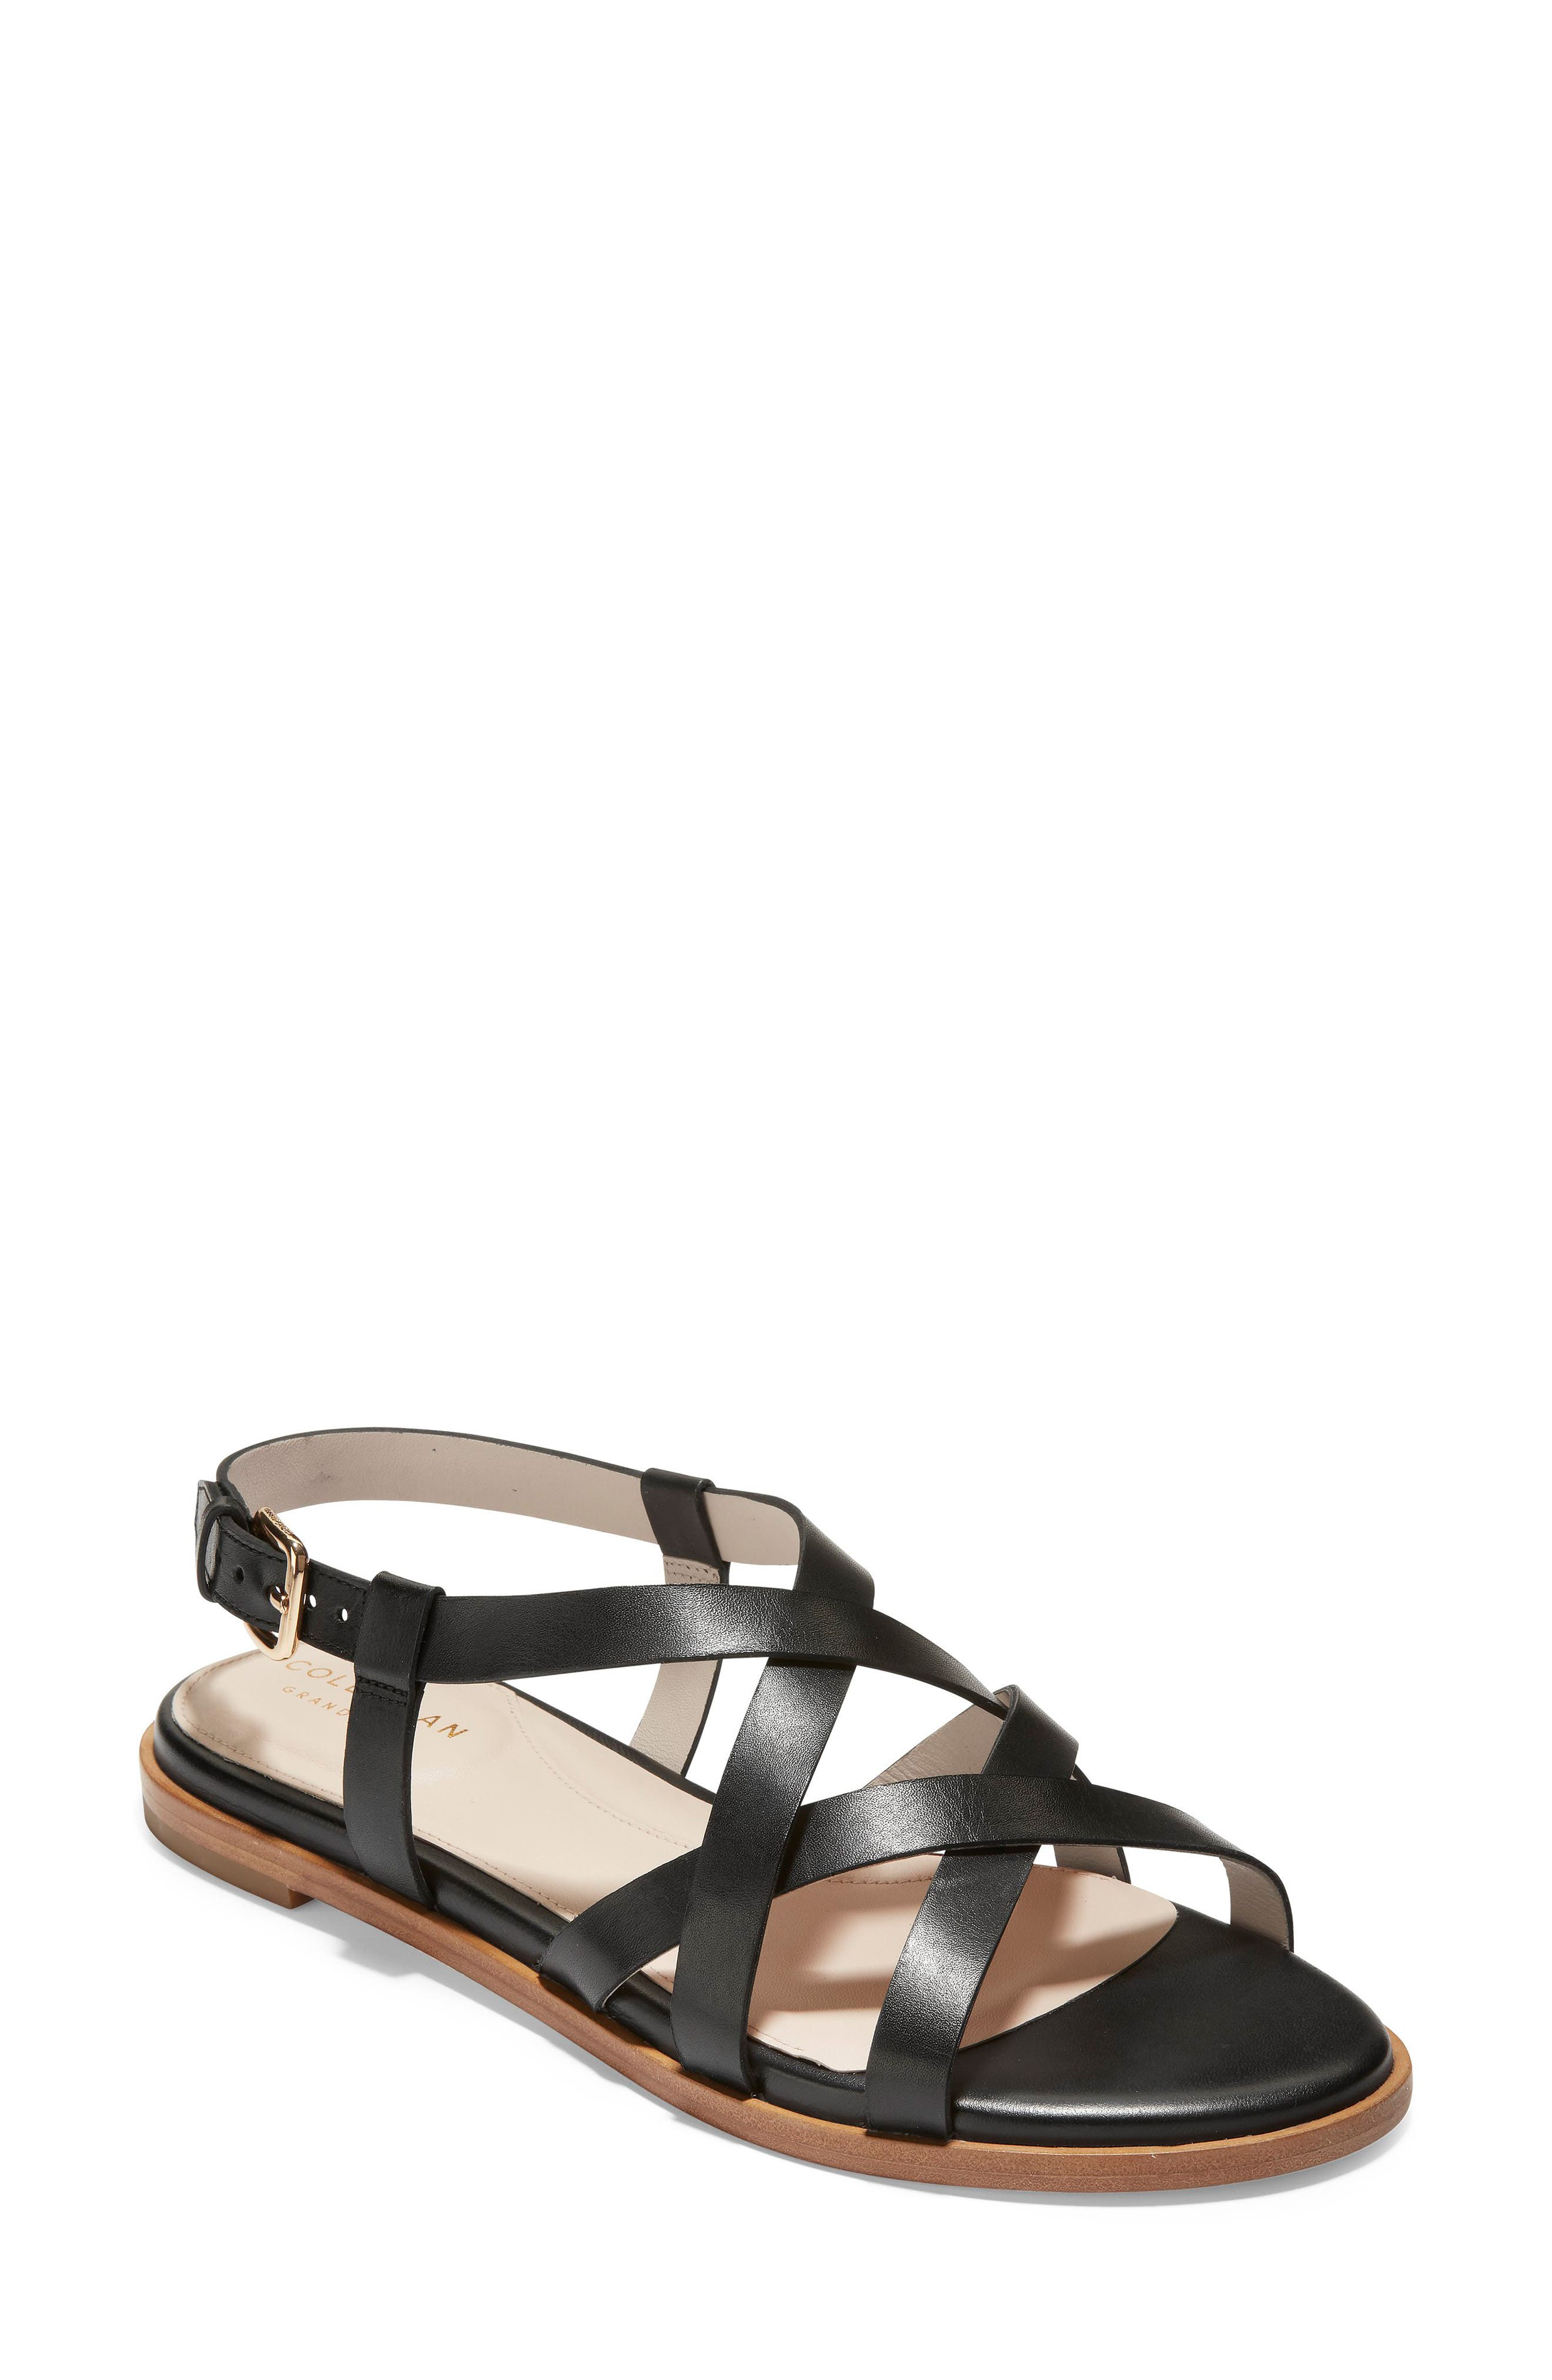 Cole Haan Analeigh Strappy Sandal, Black